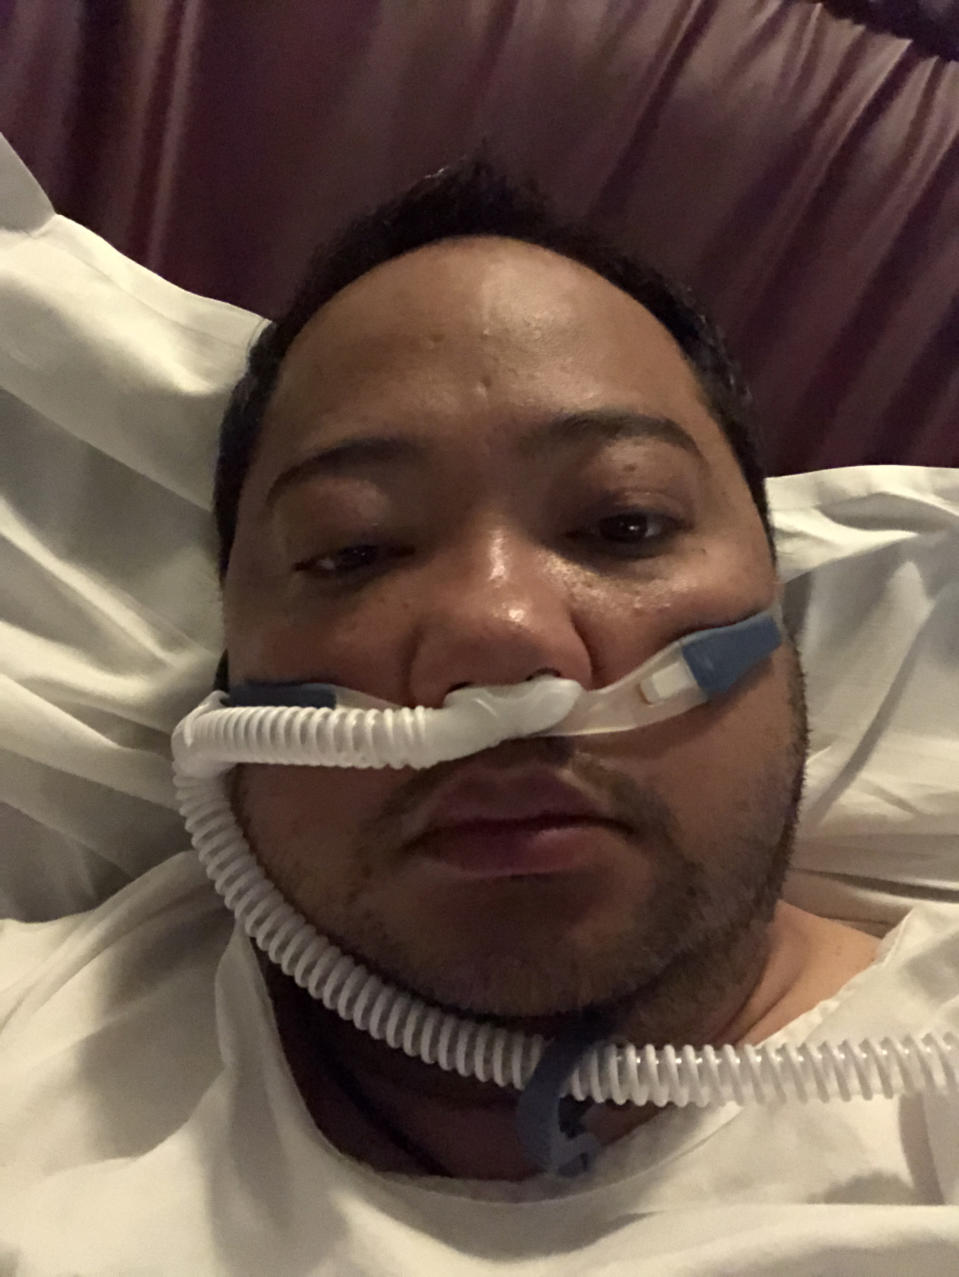 Pictured is Michael Rojales in a hospital bed with tubes hooked to his nose.